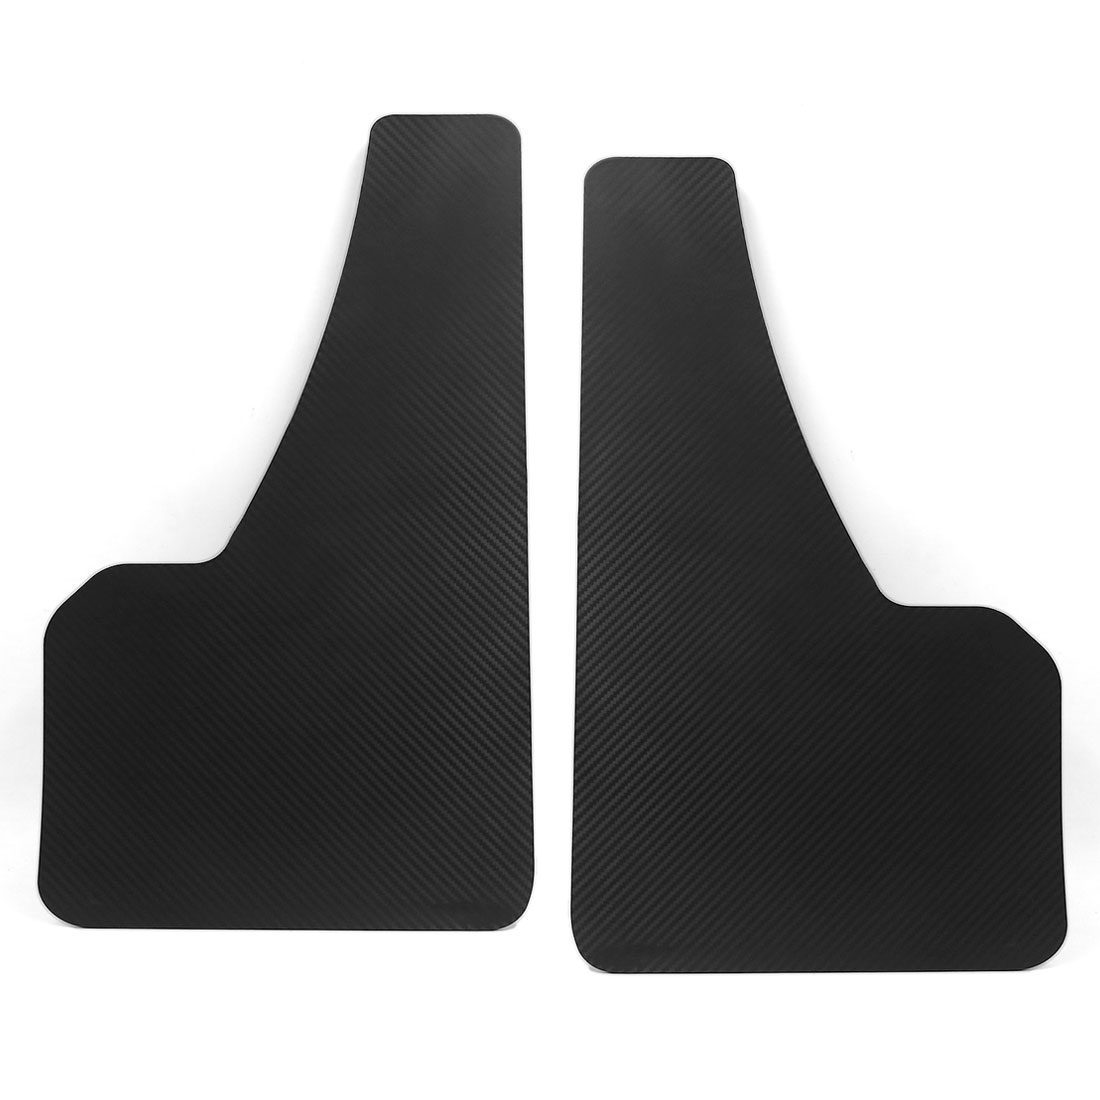 Pair Universal Front Rear Black Racing Mud Flap 49.5 x 30cm for Car